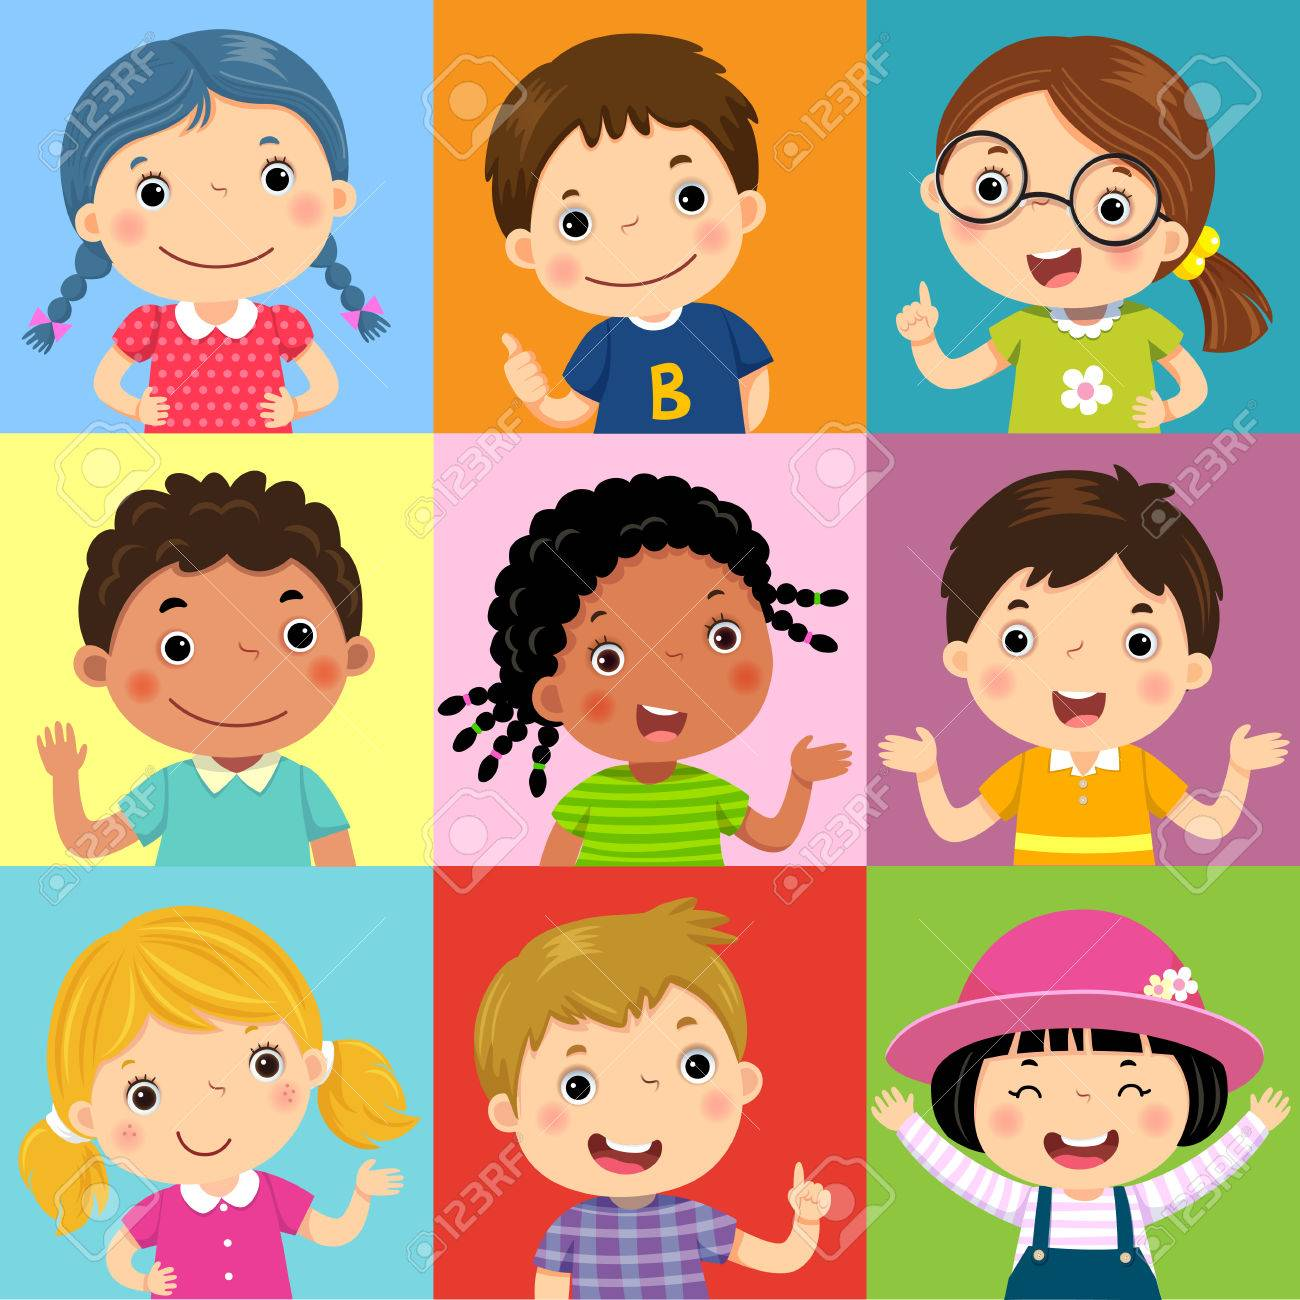 Vector illustration set of different kids with various postures - 85279223